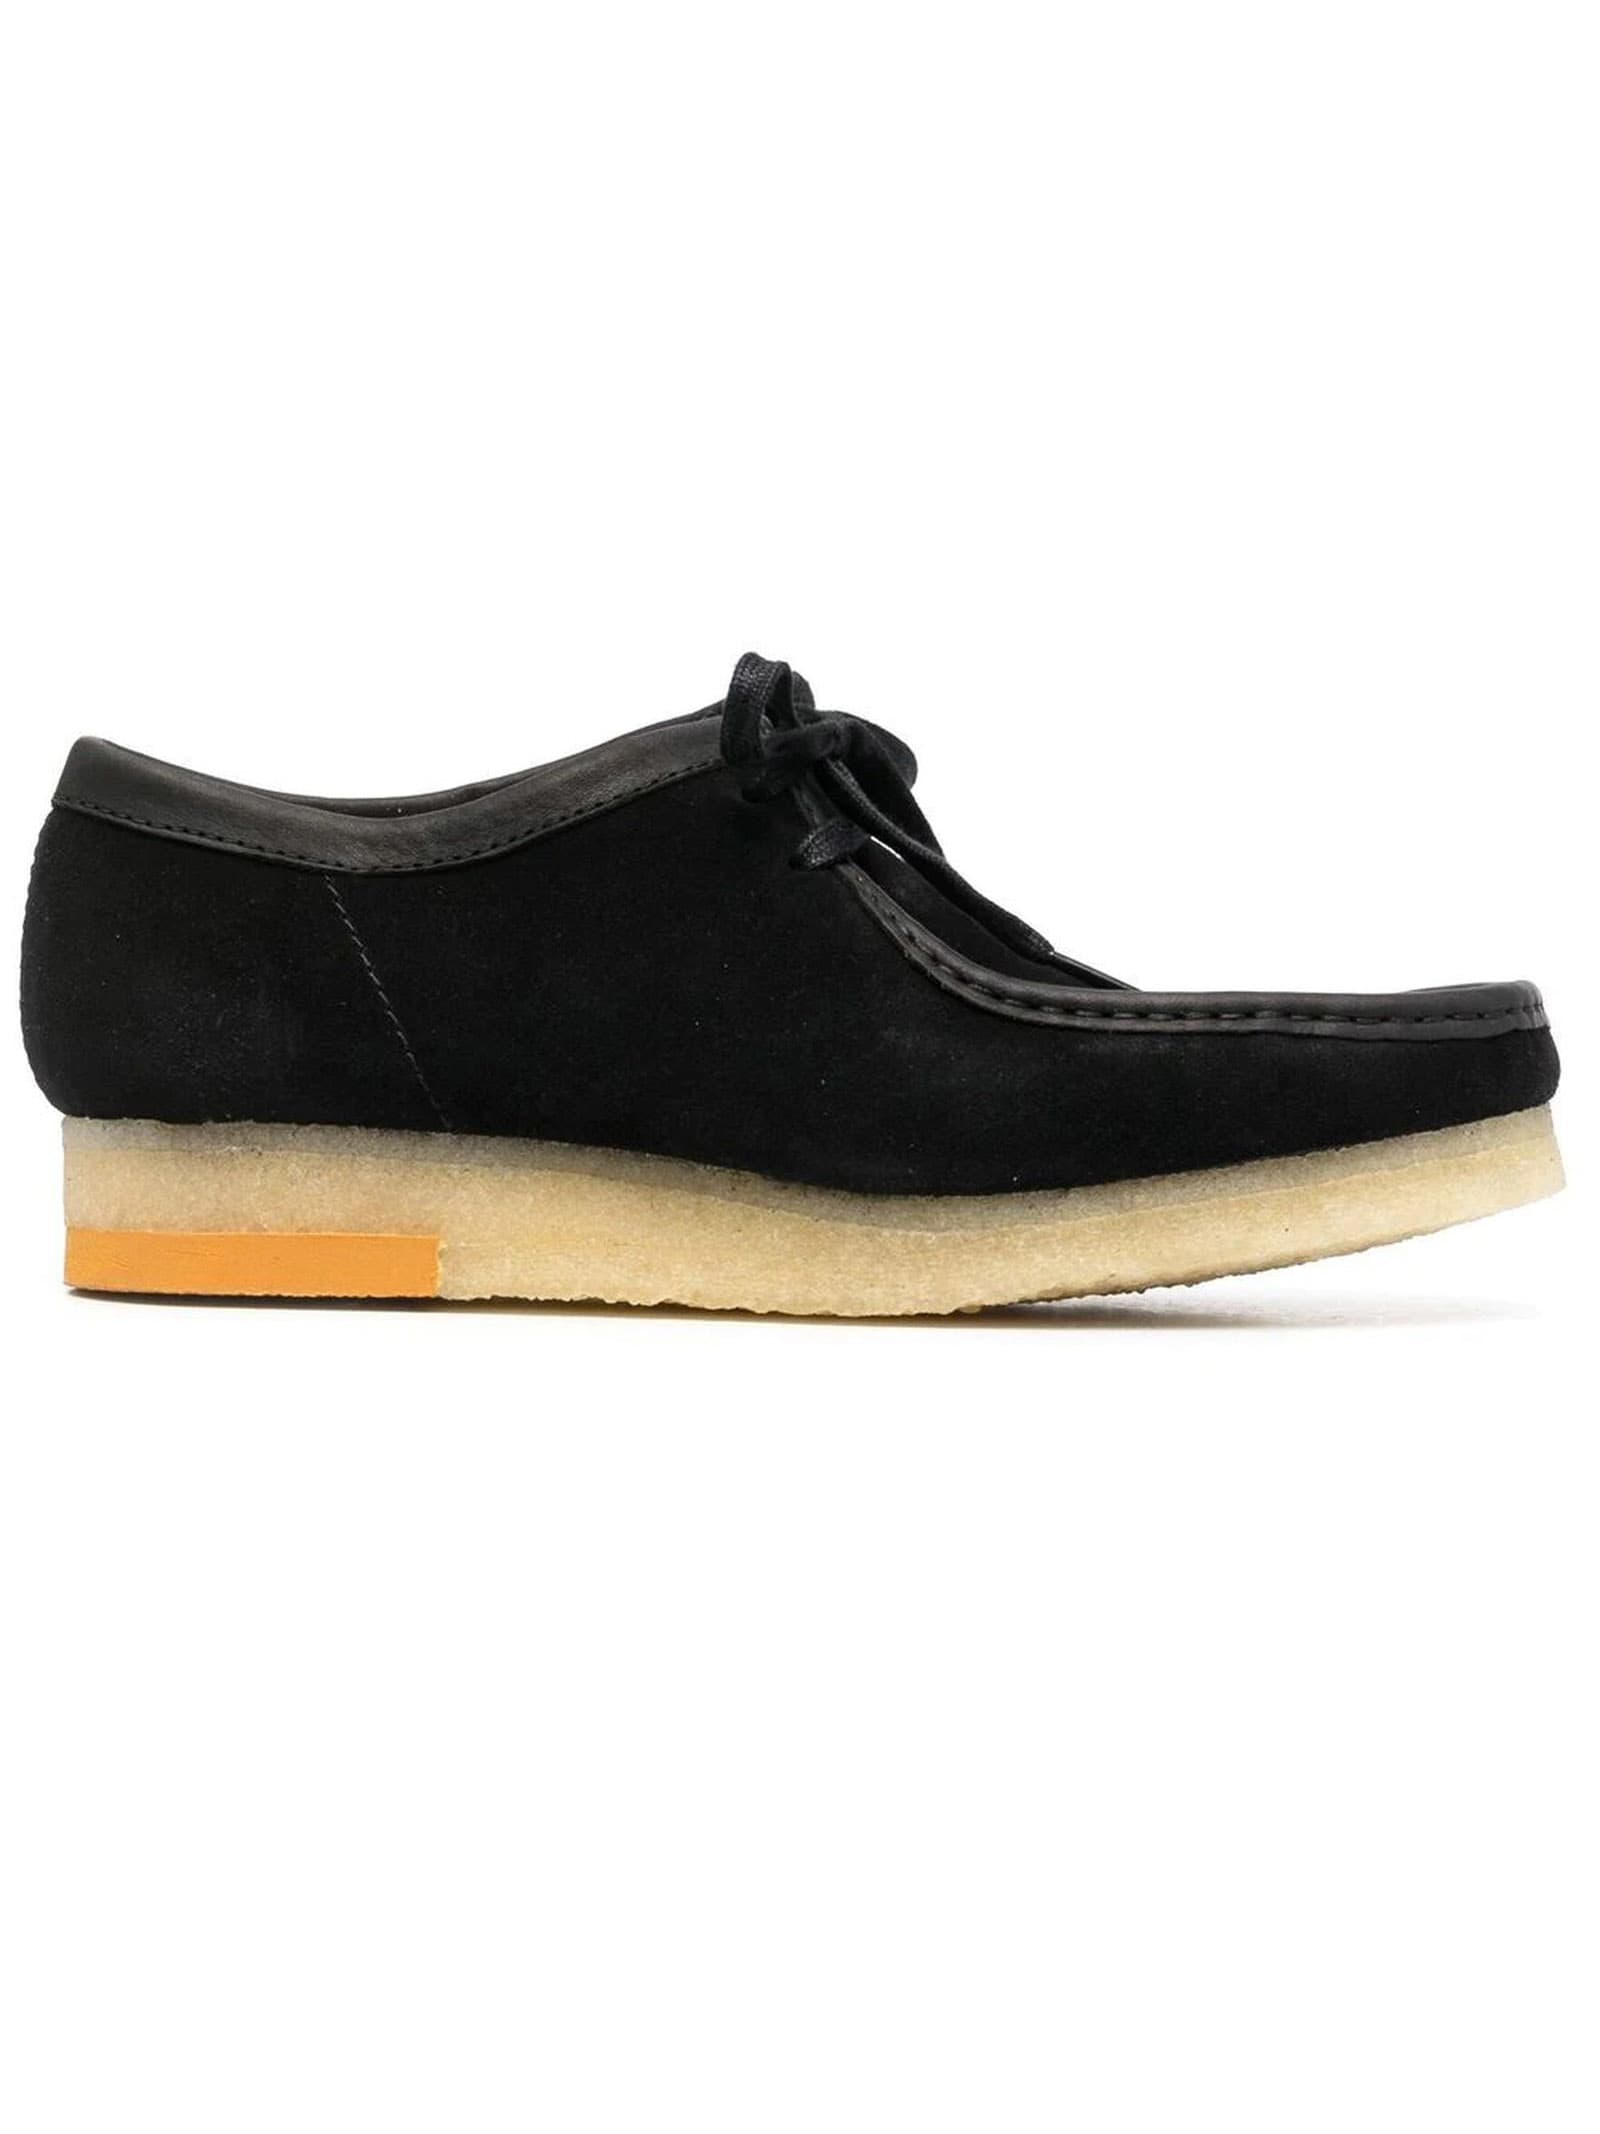 Clarks Black Suede Wallabee Lace-up Shoes